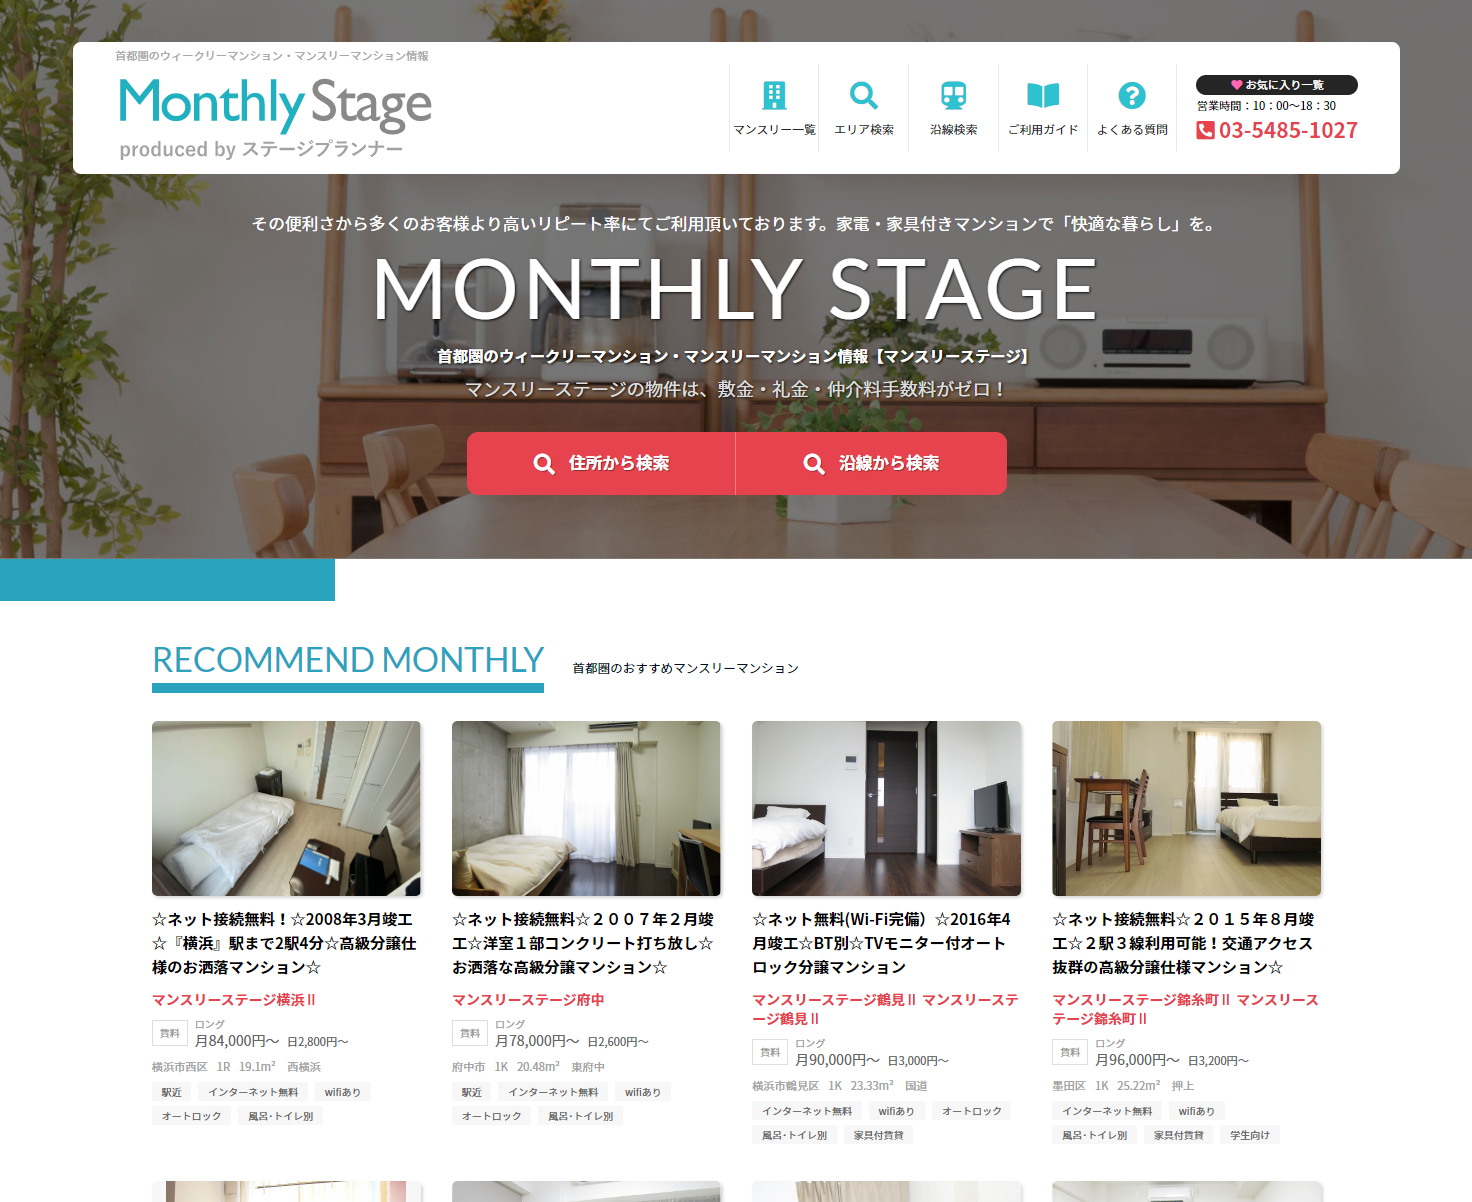 Monthly Stage